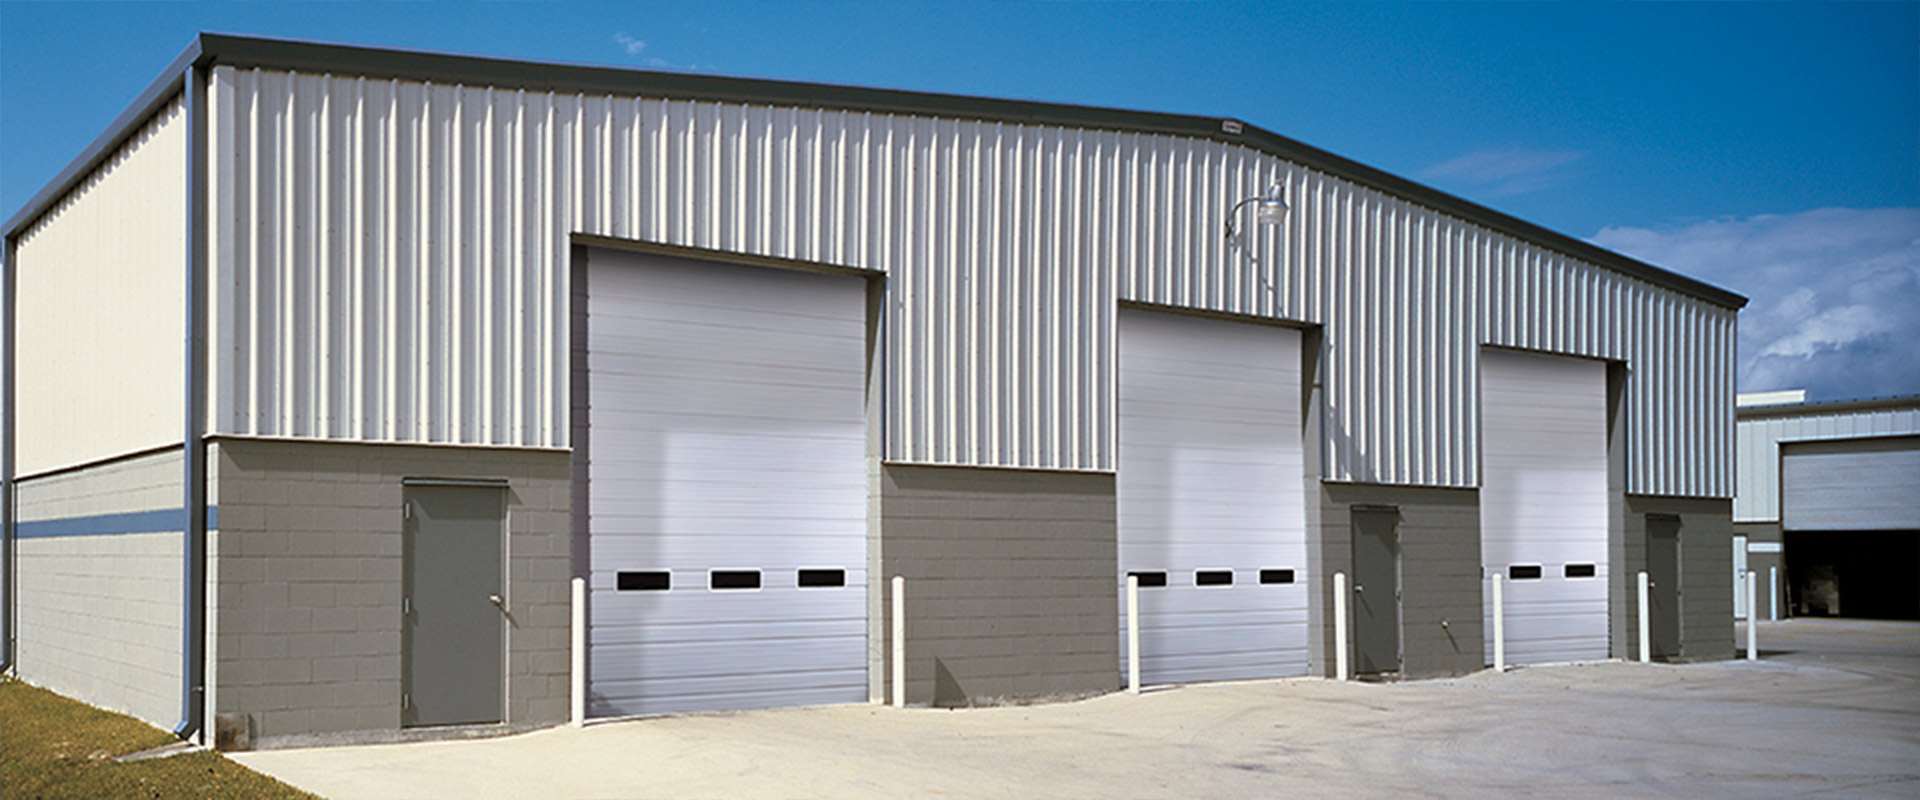 Garage Doors Commercial Garage Door Installation Amp Repair